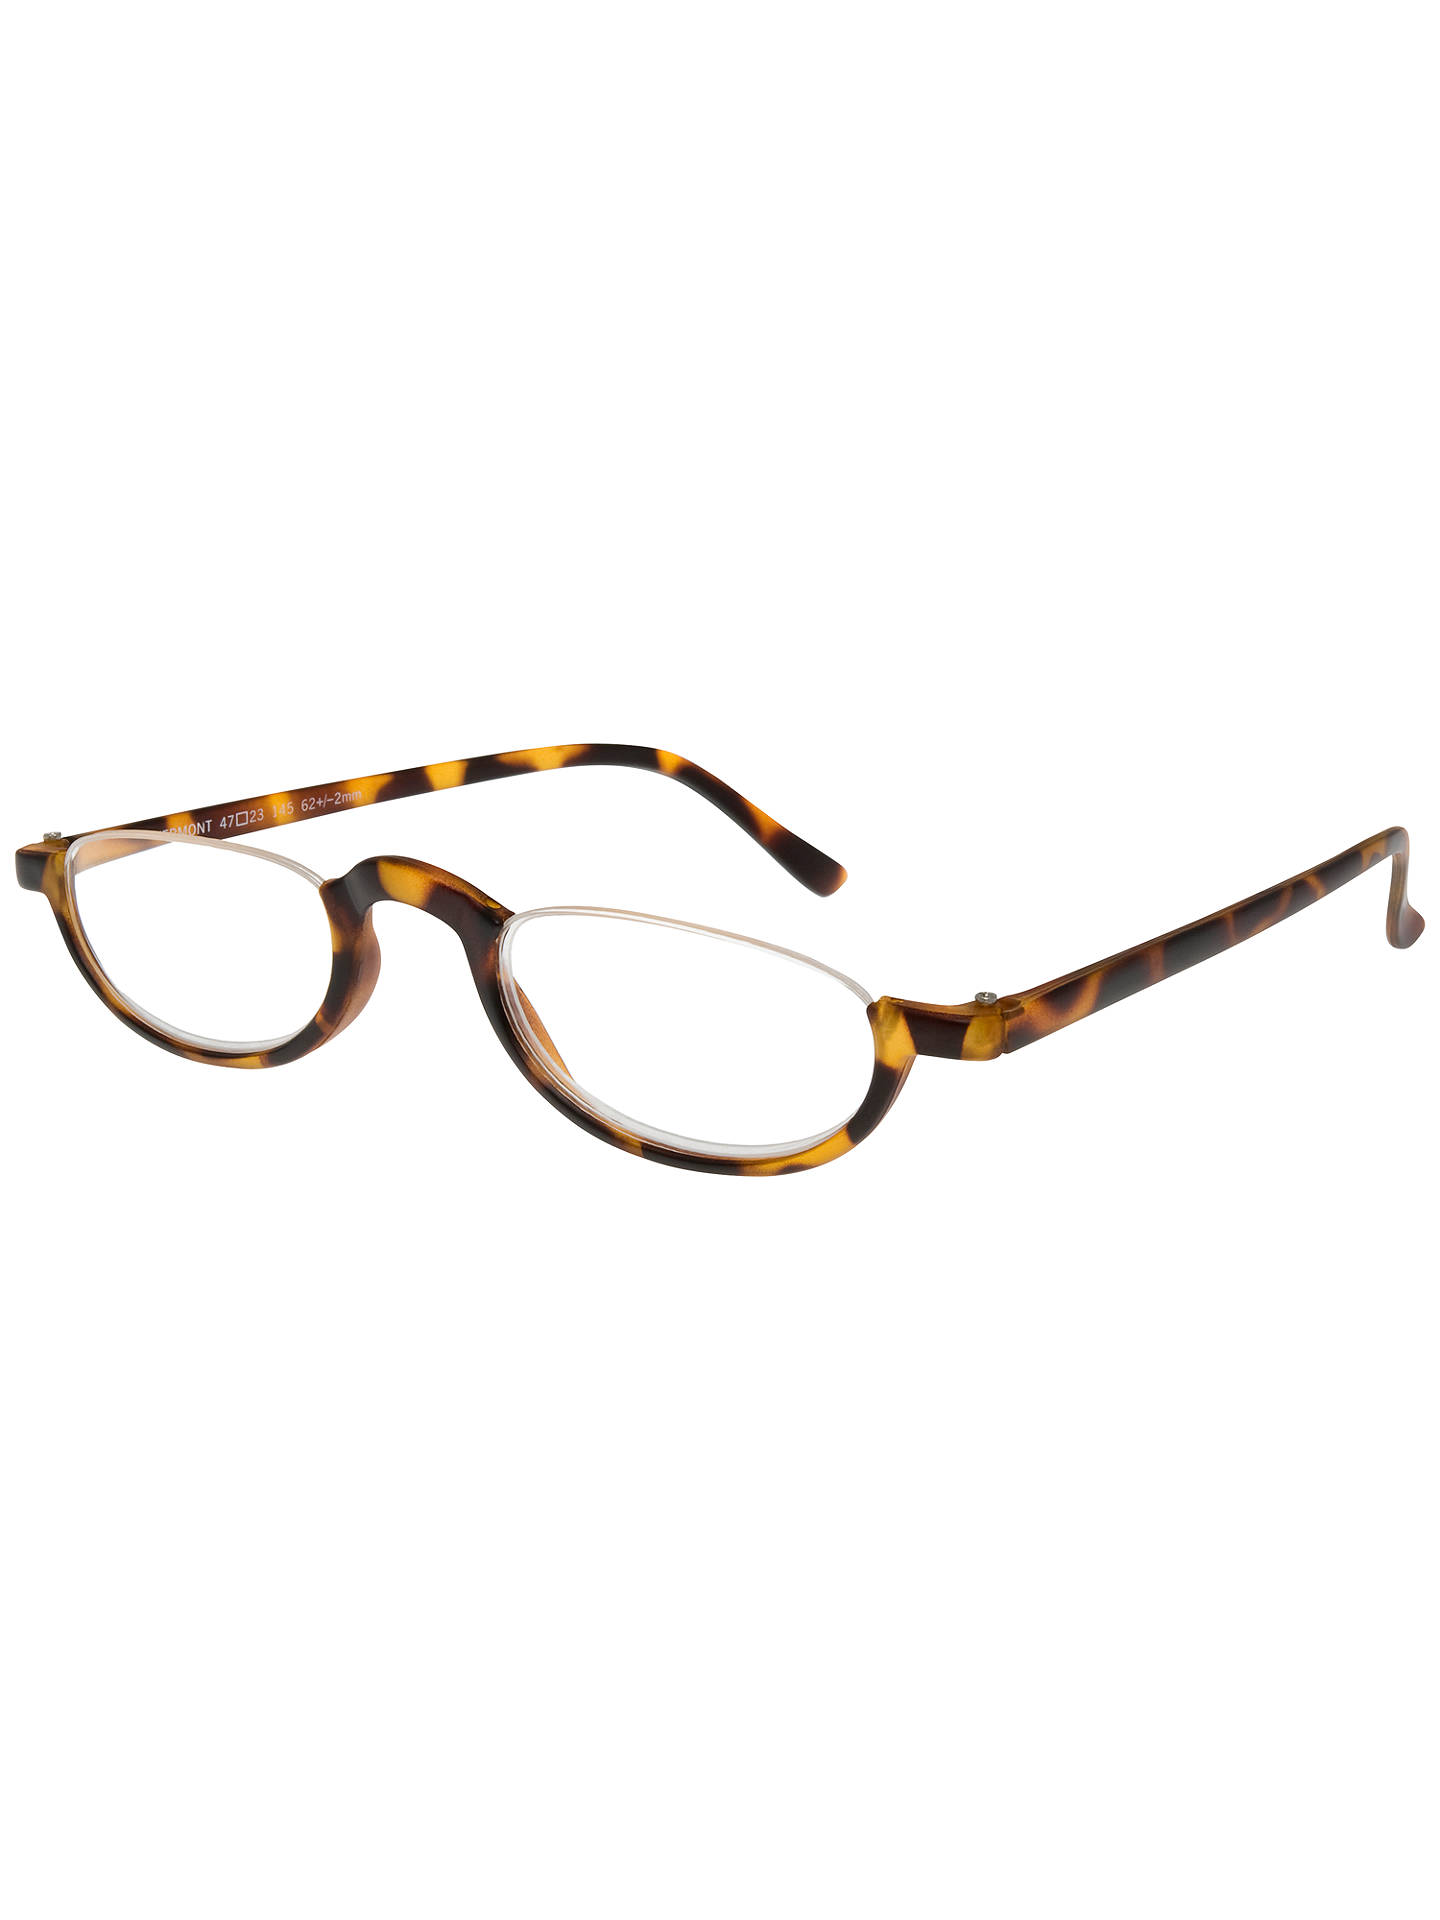 44d65c20ce5a9 Buy Magnif Eyes Vermont Unisex Ready Reader Glasses